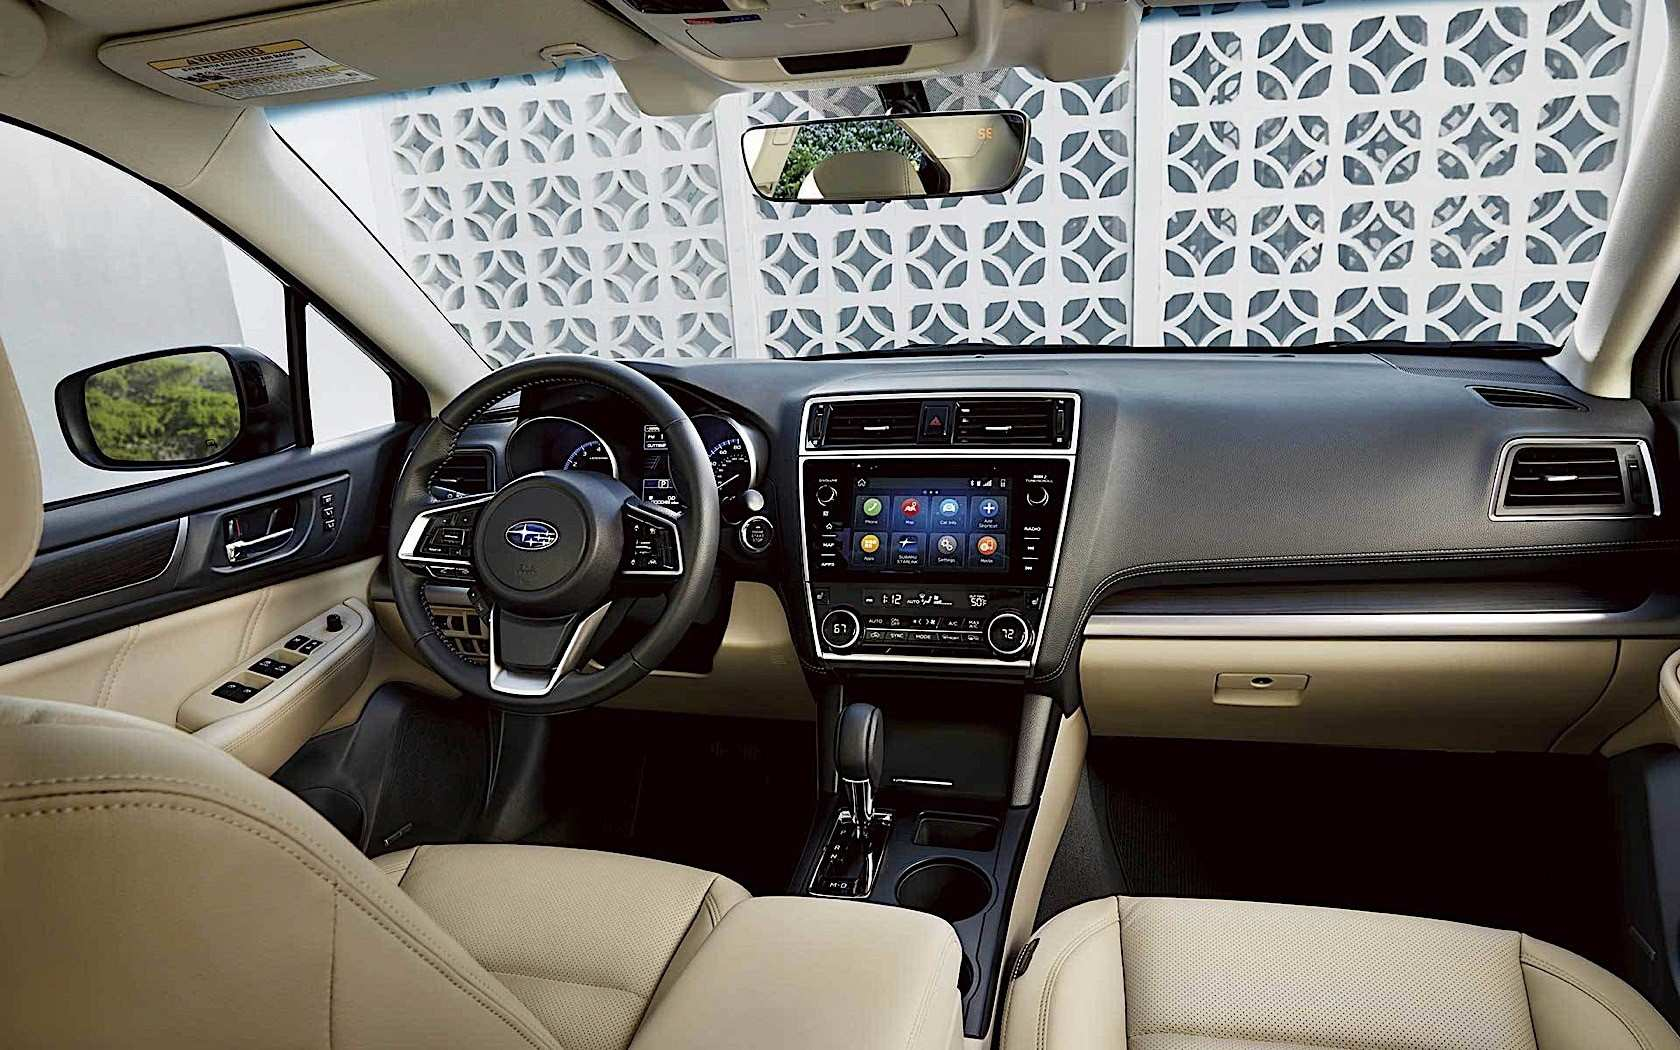 53 Best Review Subaru Legacy 2020 Interior Overview for Subaru Legacy 2020 Interior